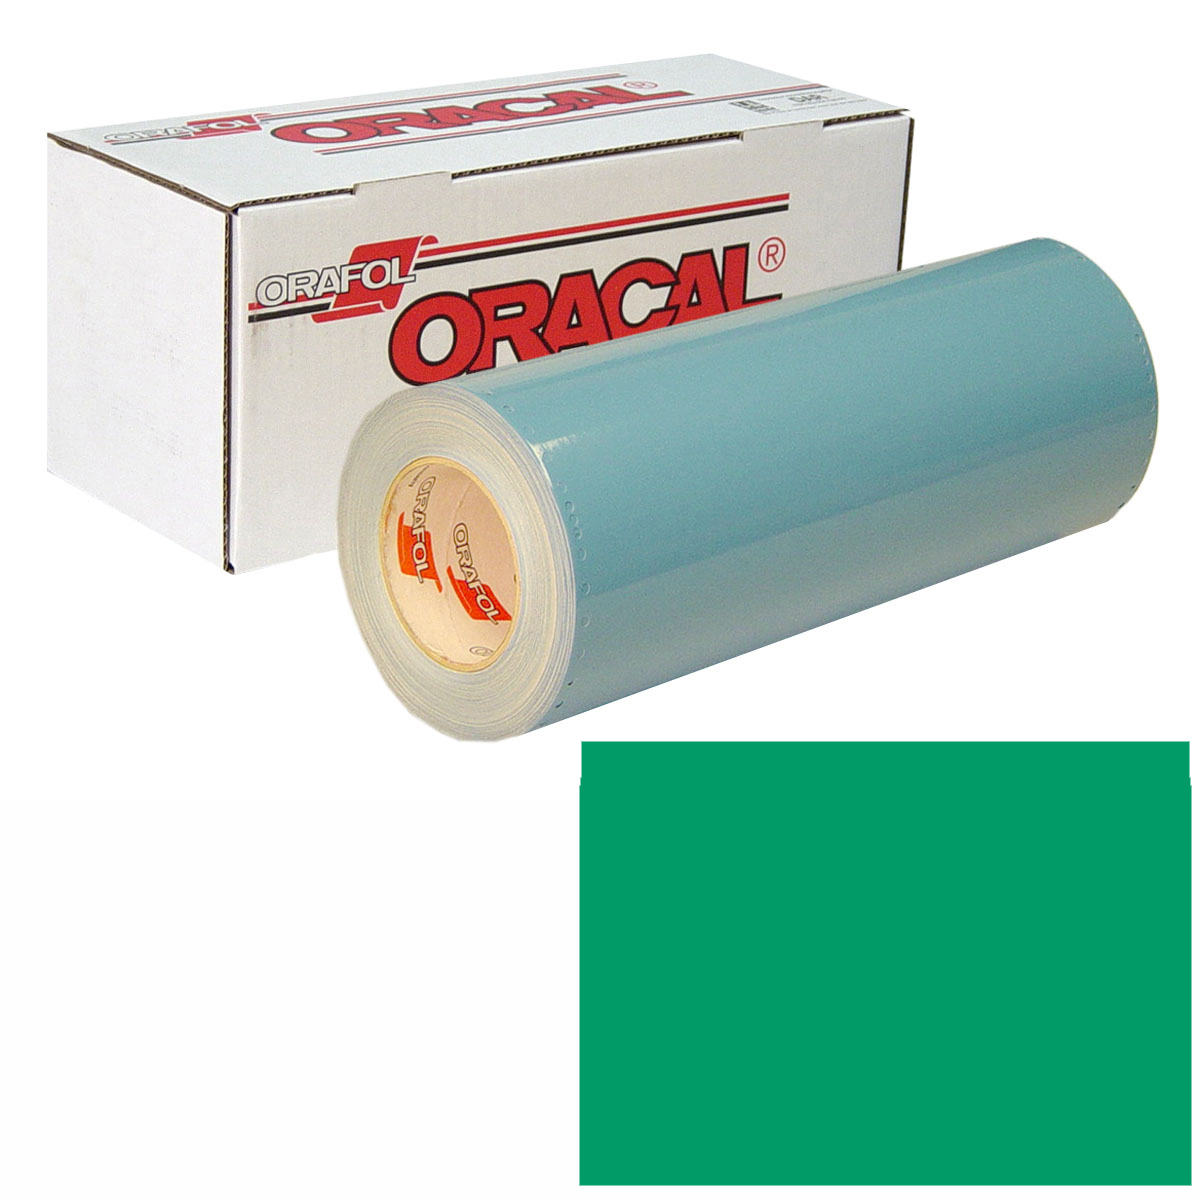 ORACAL 751 30in X 50yd 062 Light Green